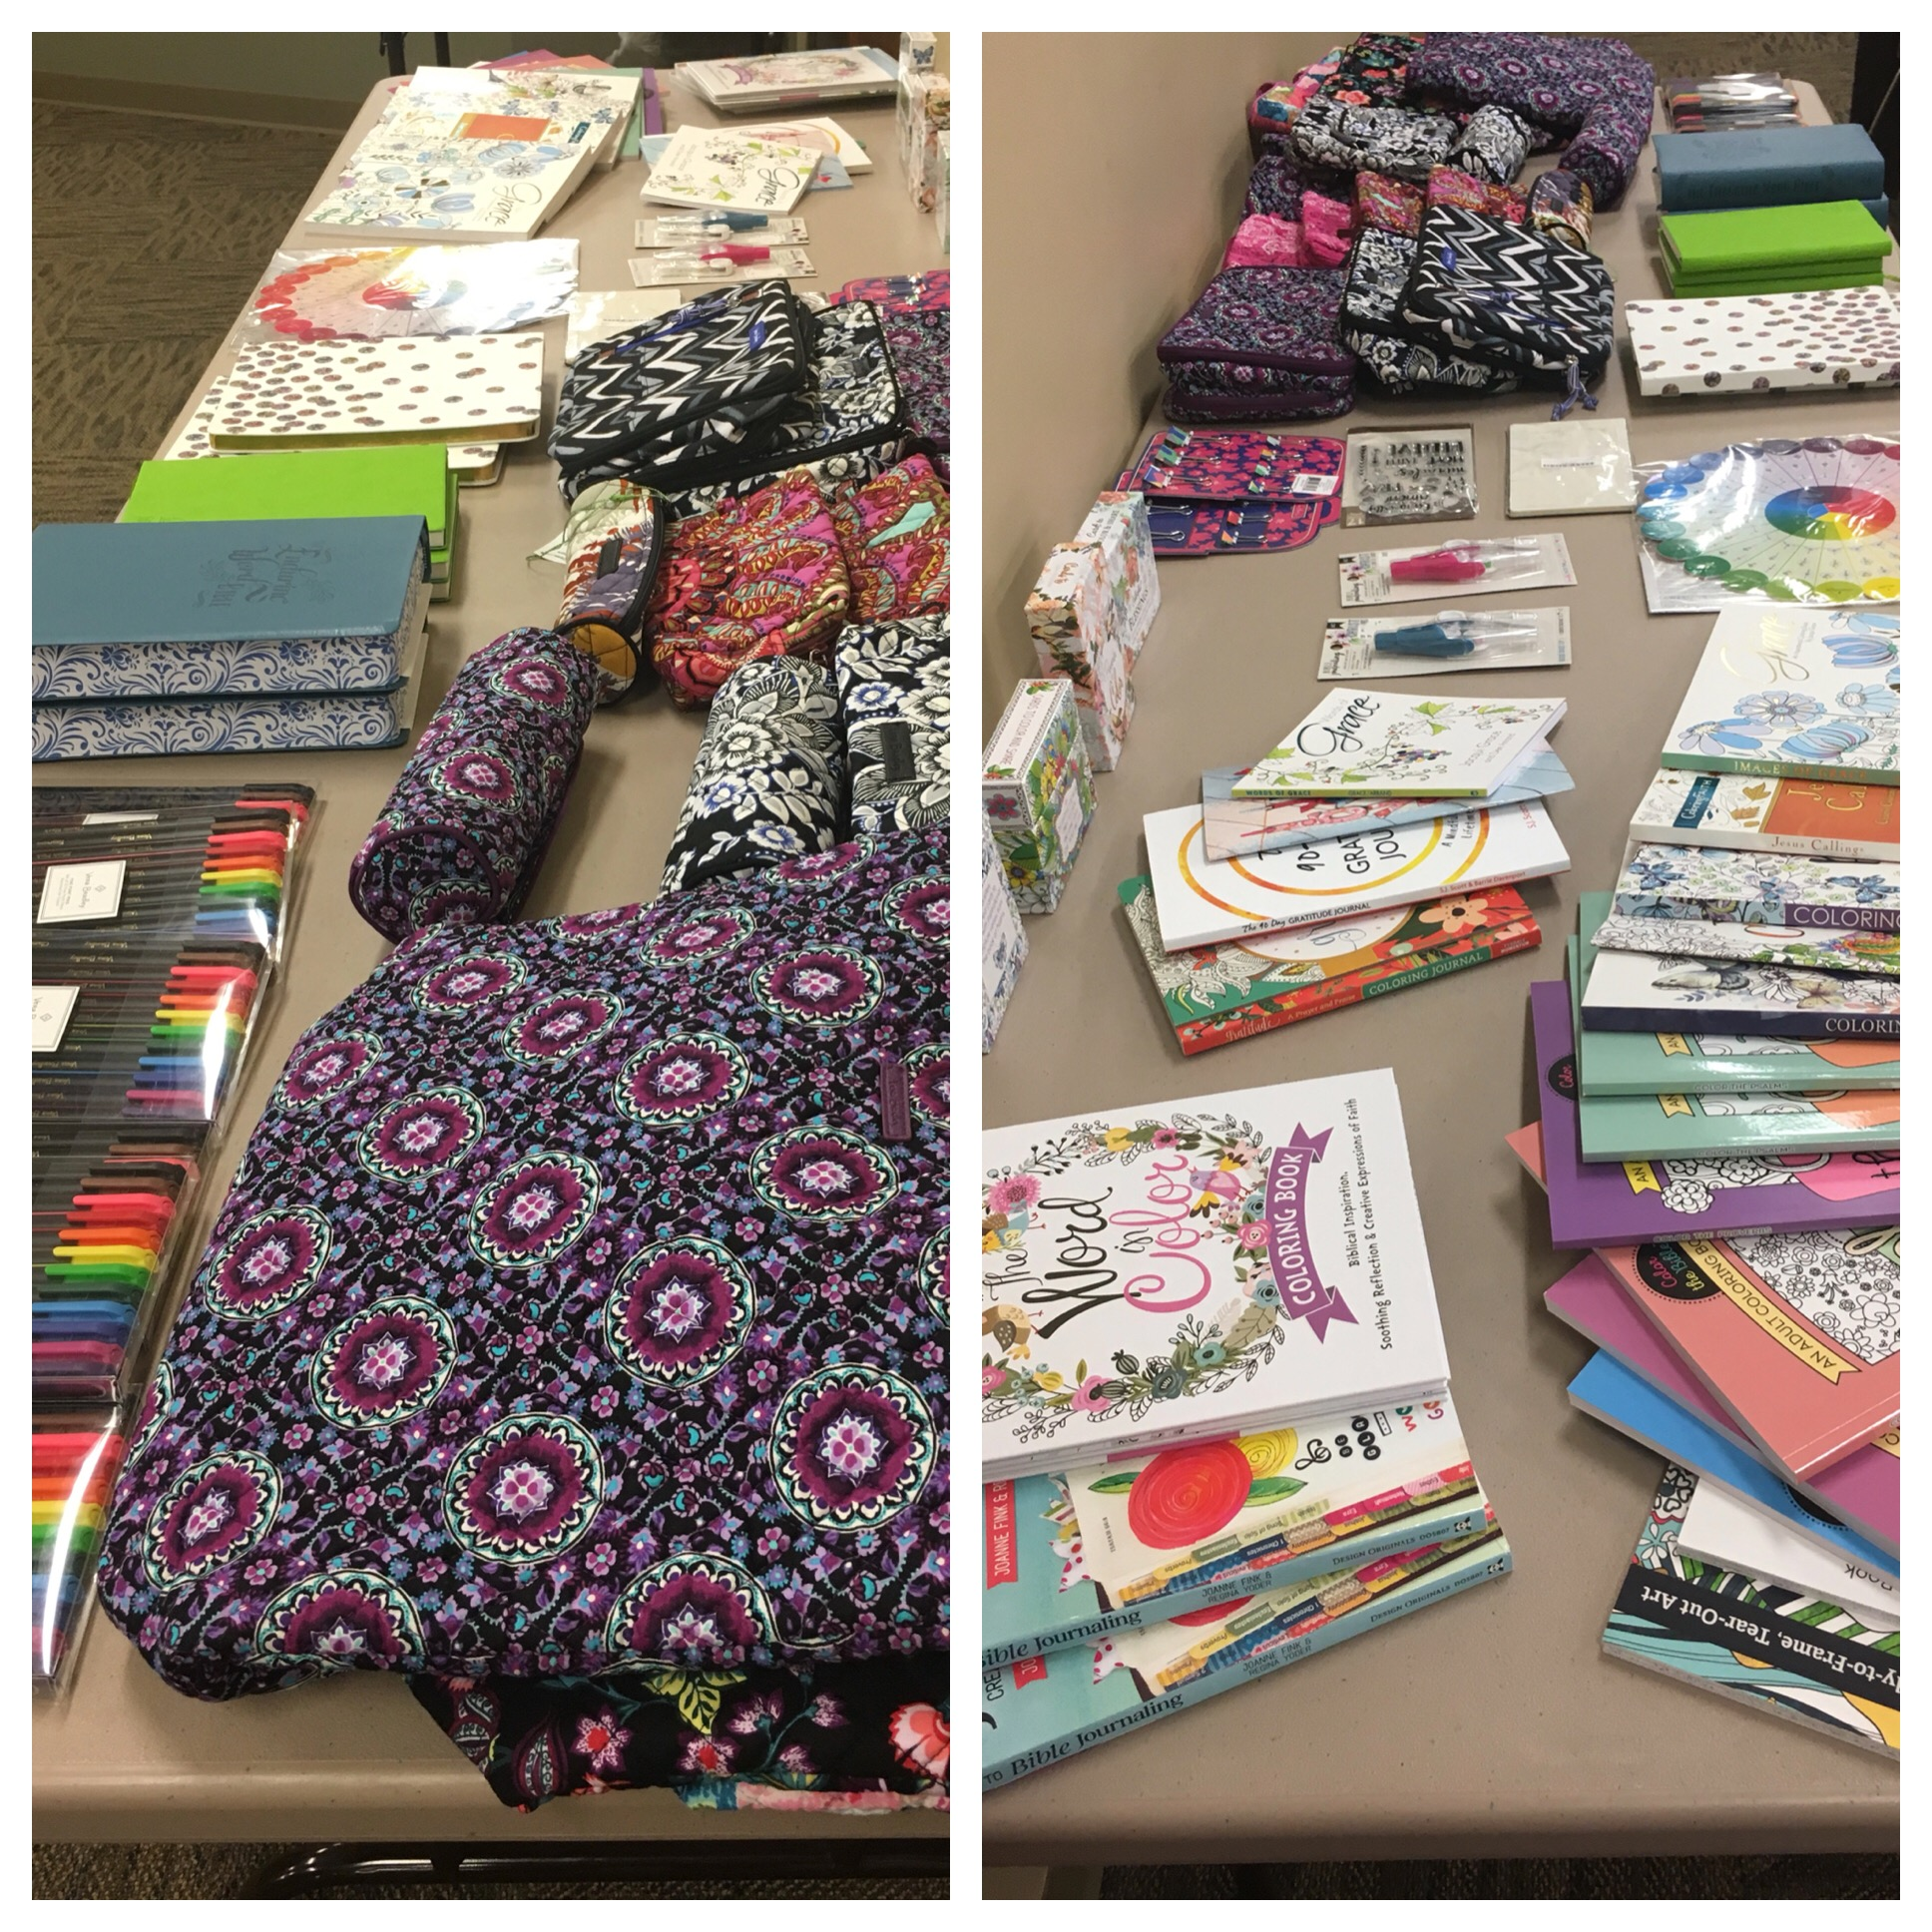 A wonderful array of door prizes were lined up ready to gift to those coming to the event.